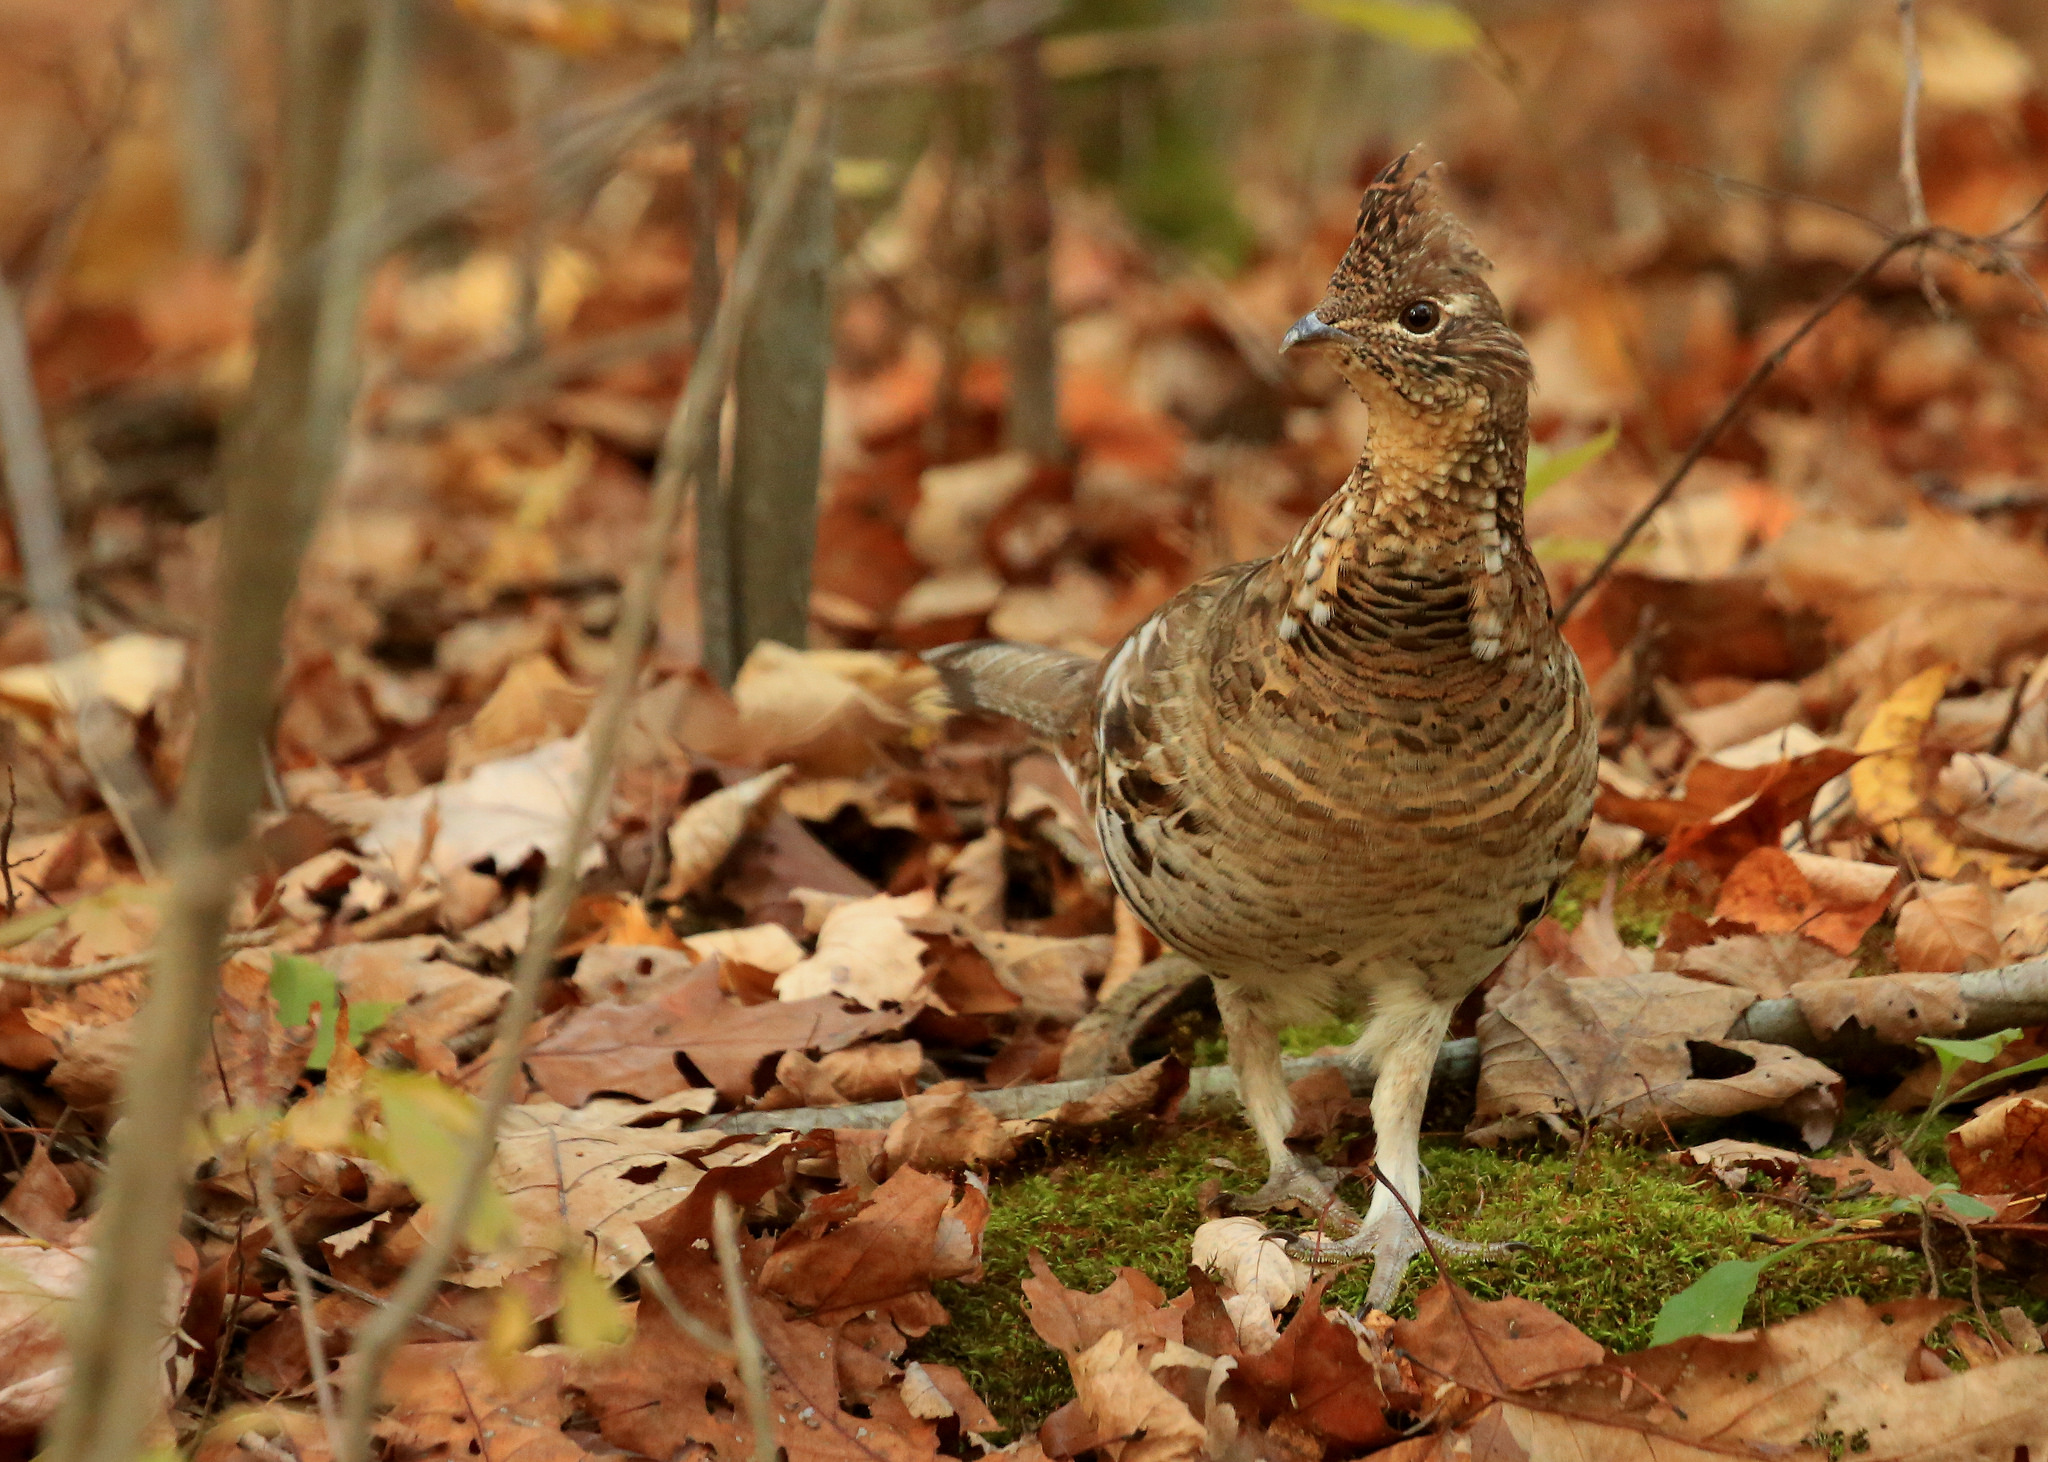 A ruffed grouse struts through a woodland with oak leaves and moss covering the ground. Photo by Tim Lenz